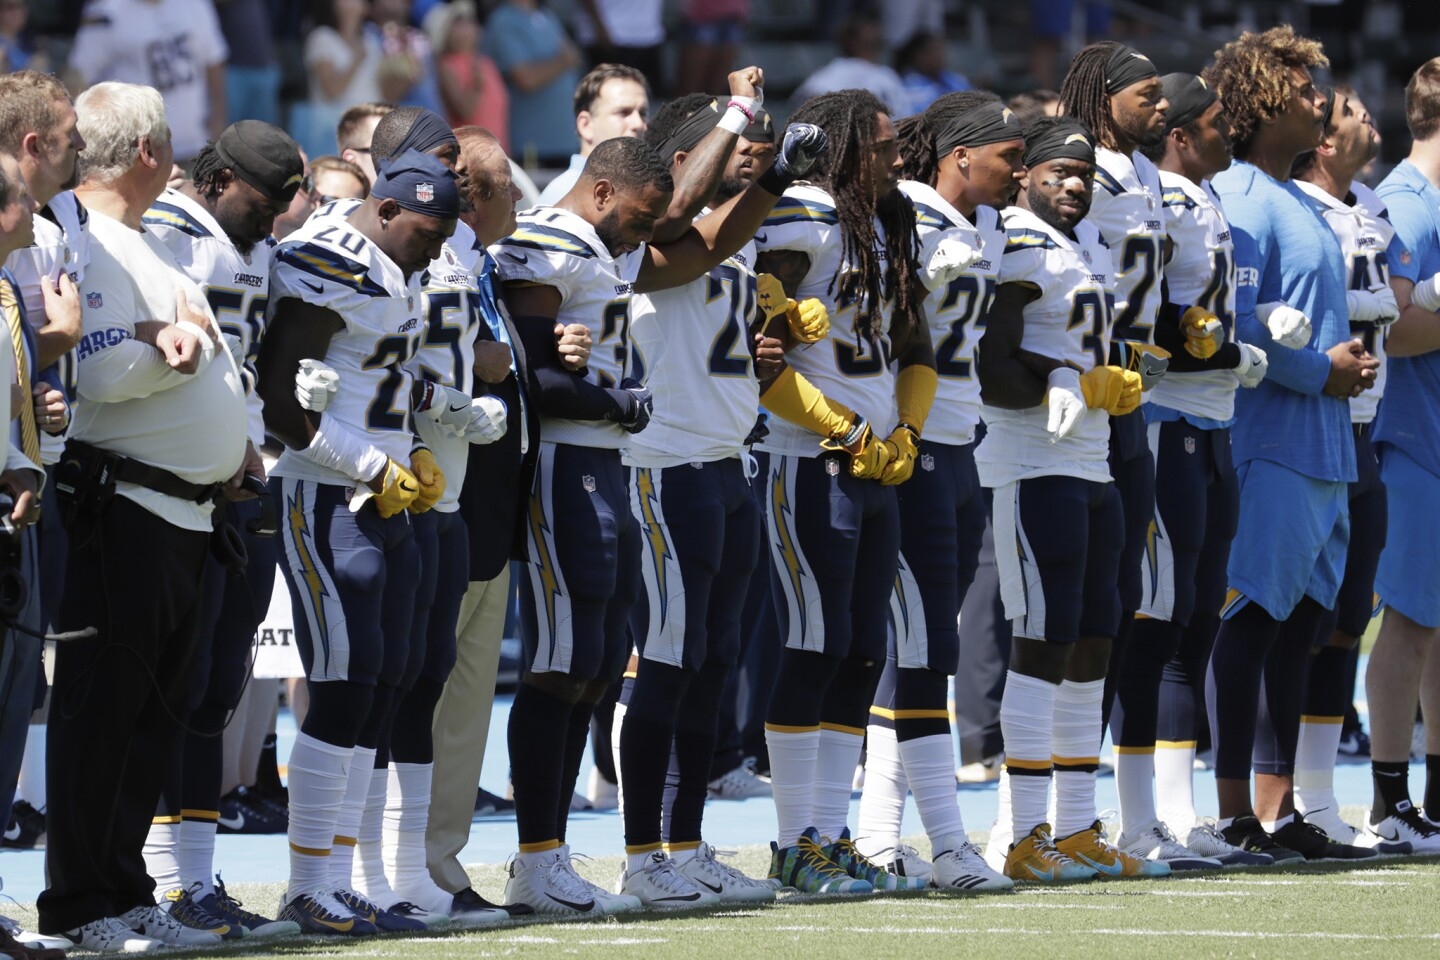 The San Diego Chargers link arms during the national anthem in a game against the Kansas City Chiefs at StubHub Center. (Robert Gauthier/Los Angeles Times)